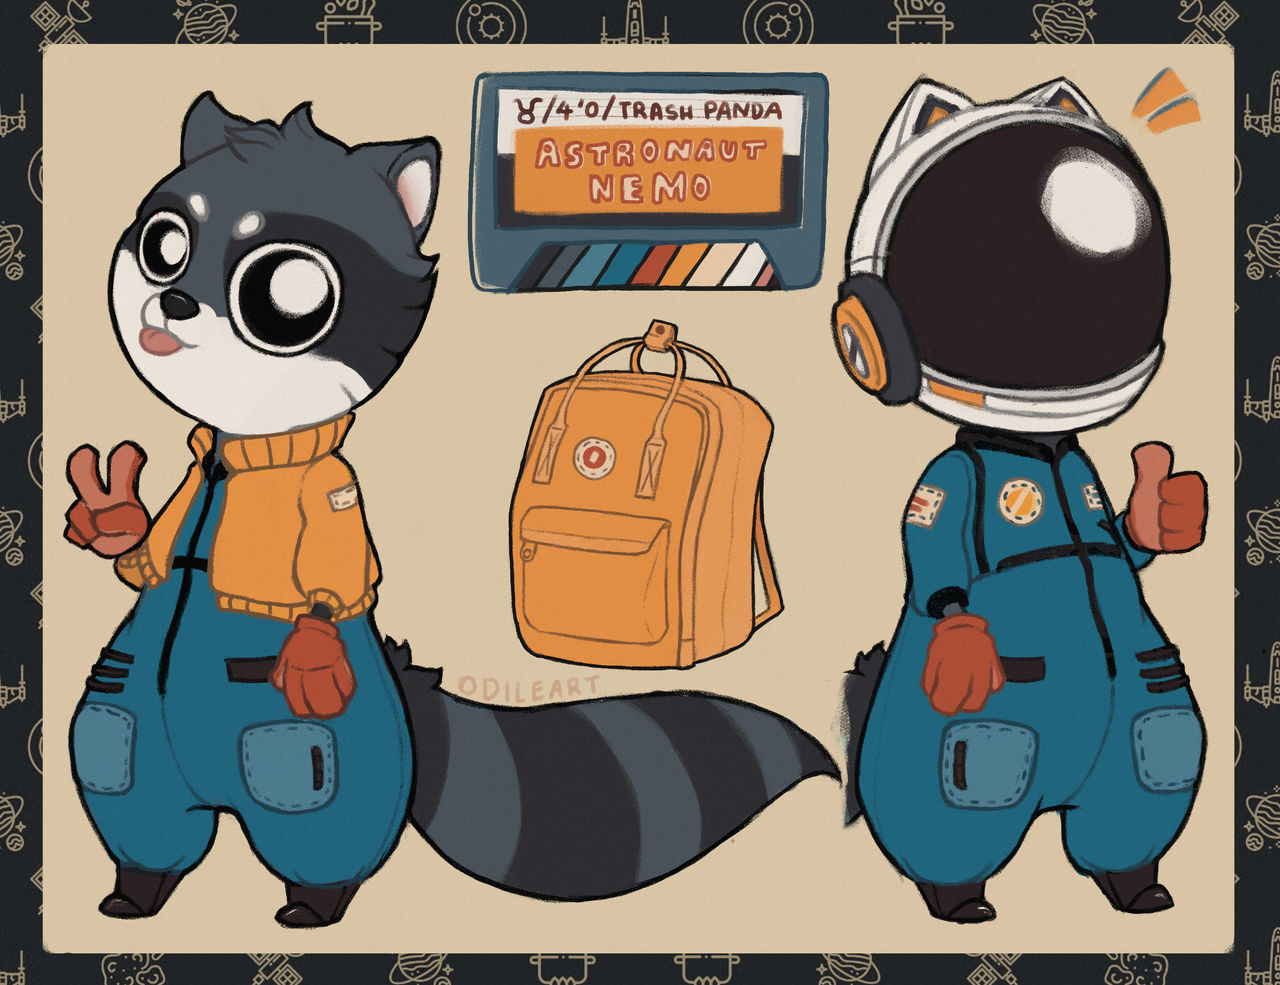 astronaut_nemo__character_reference_sheet_by_sic_parvis_deus_ddtfcxc-fullview.jpg